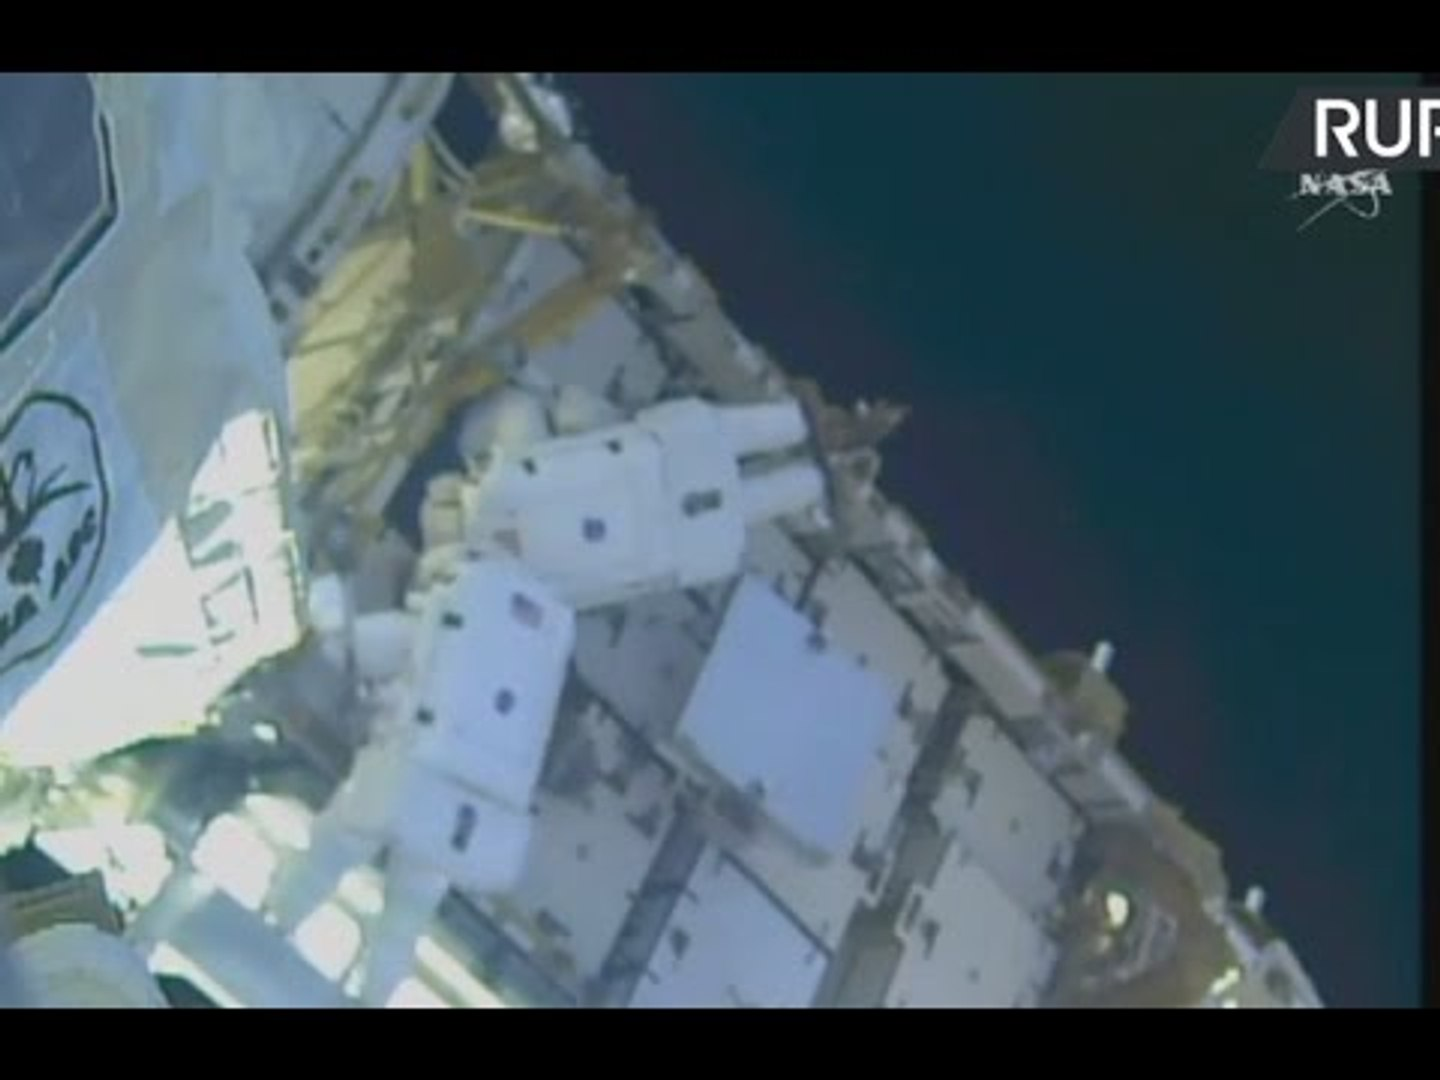 LIVE from outer space: First spacewalk of the year